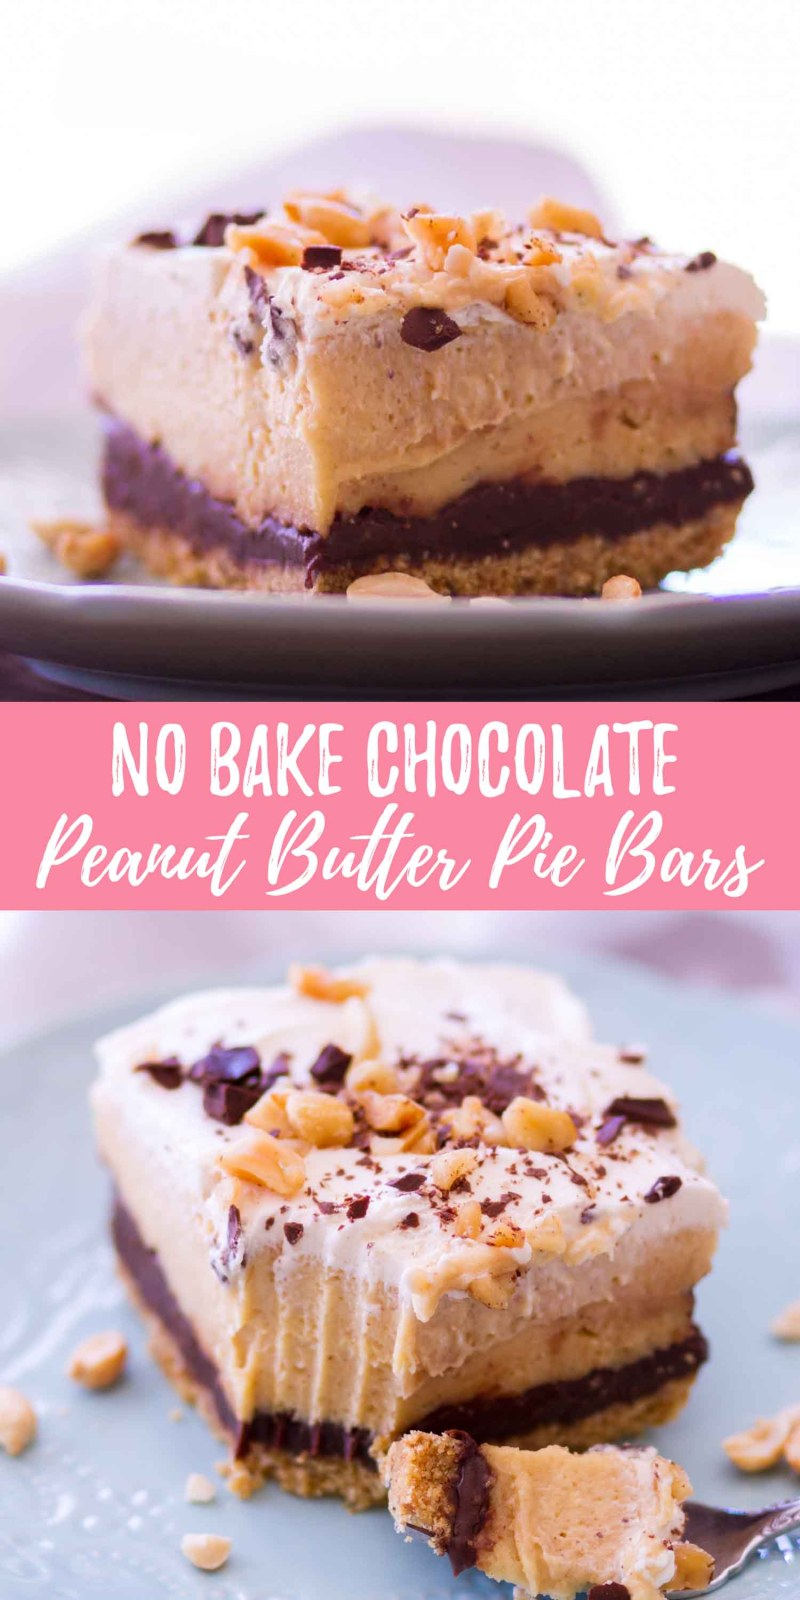 These no bake chocolate peanut butter pie bars are layers of graham cracker crumbs, homemade chocolate ganache, peanut butter cream filling, and homemade whipped cream on top. Chocolate and peanut butter lovers, this one's for you!